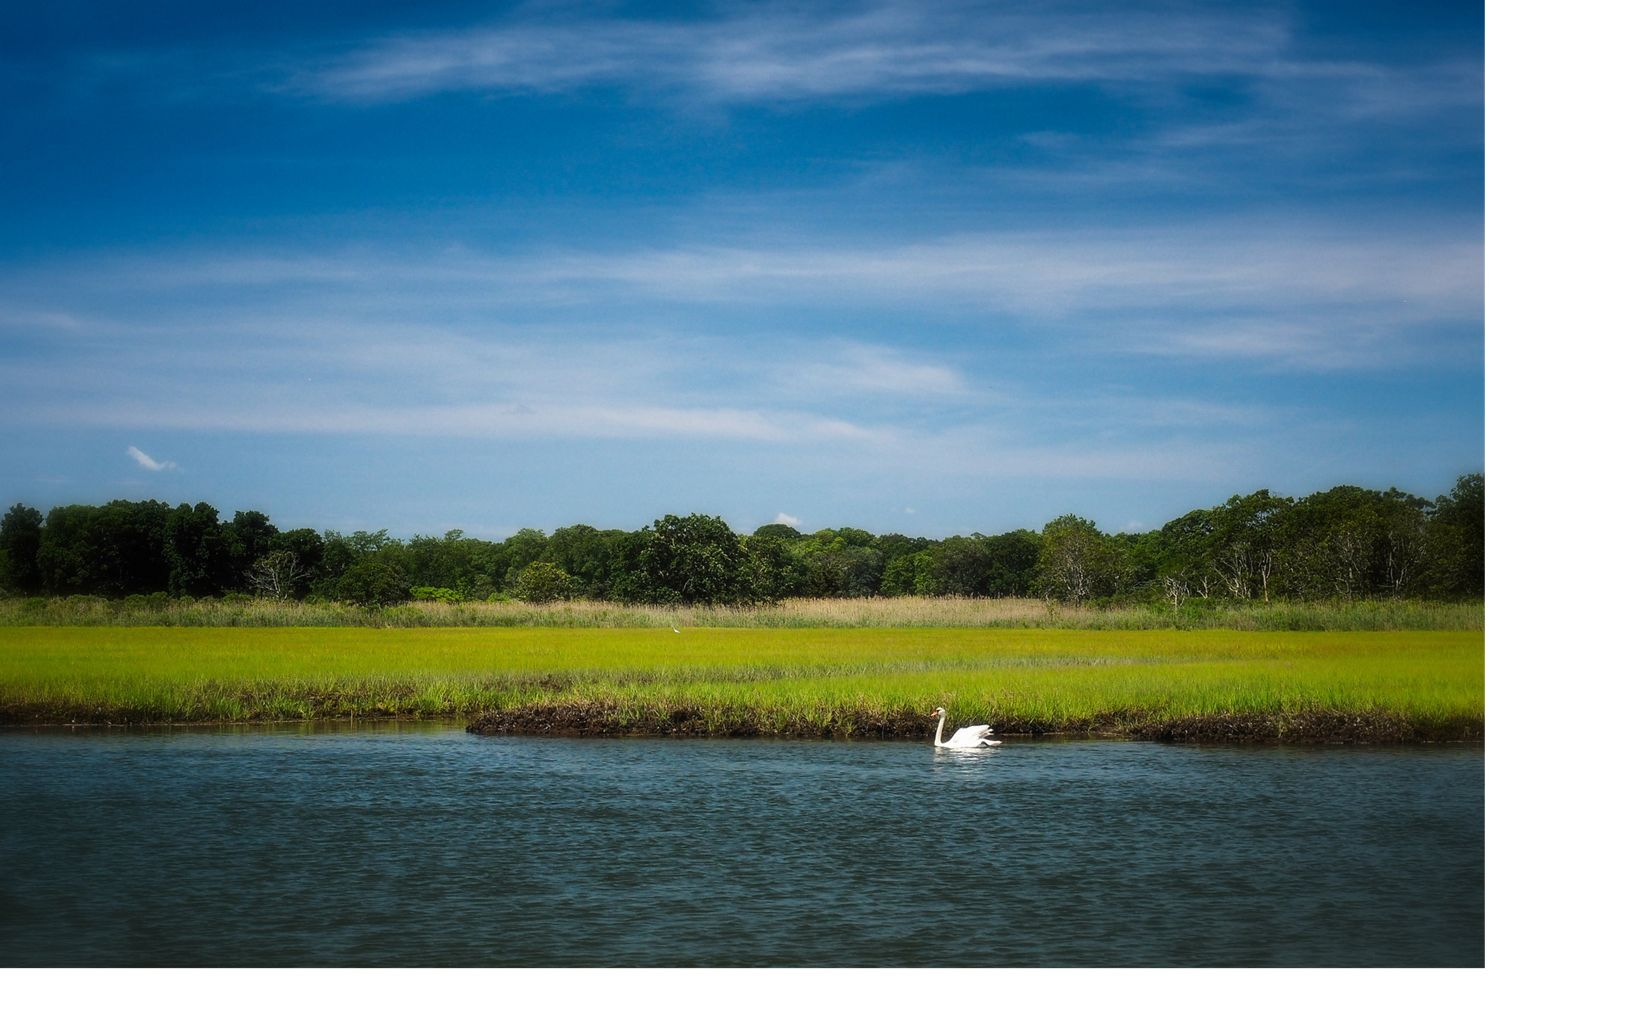 A white swan swimming in the water with salt marsh and trees in the background under a blue sky.